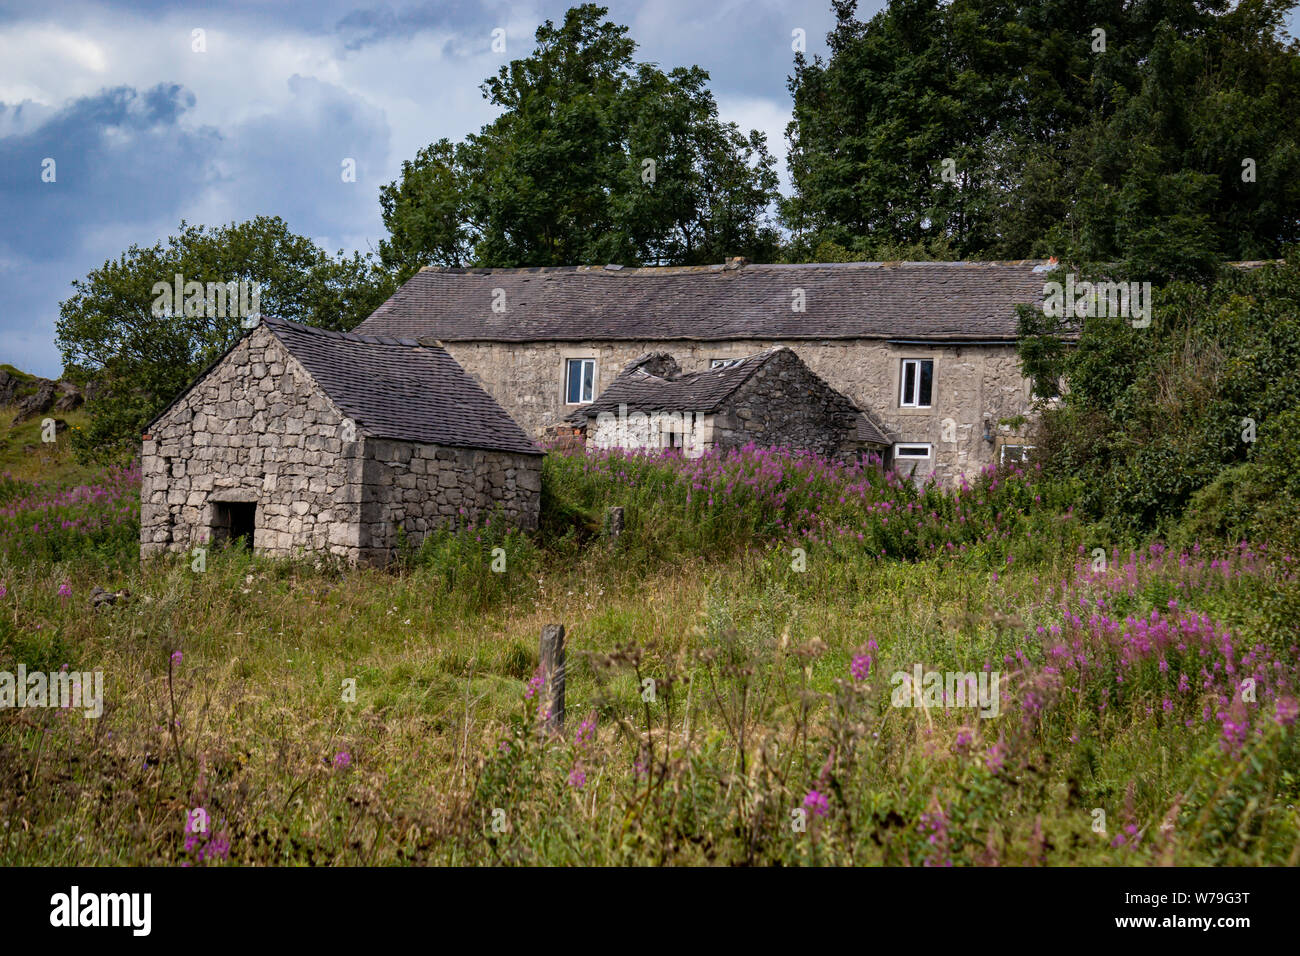 Abandoned Derelict Stone Building Cottage/House  and Outbuildings on the High Peak Trail  near Harboro Rocks,Brassington ,Peak District.Derbyshire.UK Stock Photo